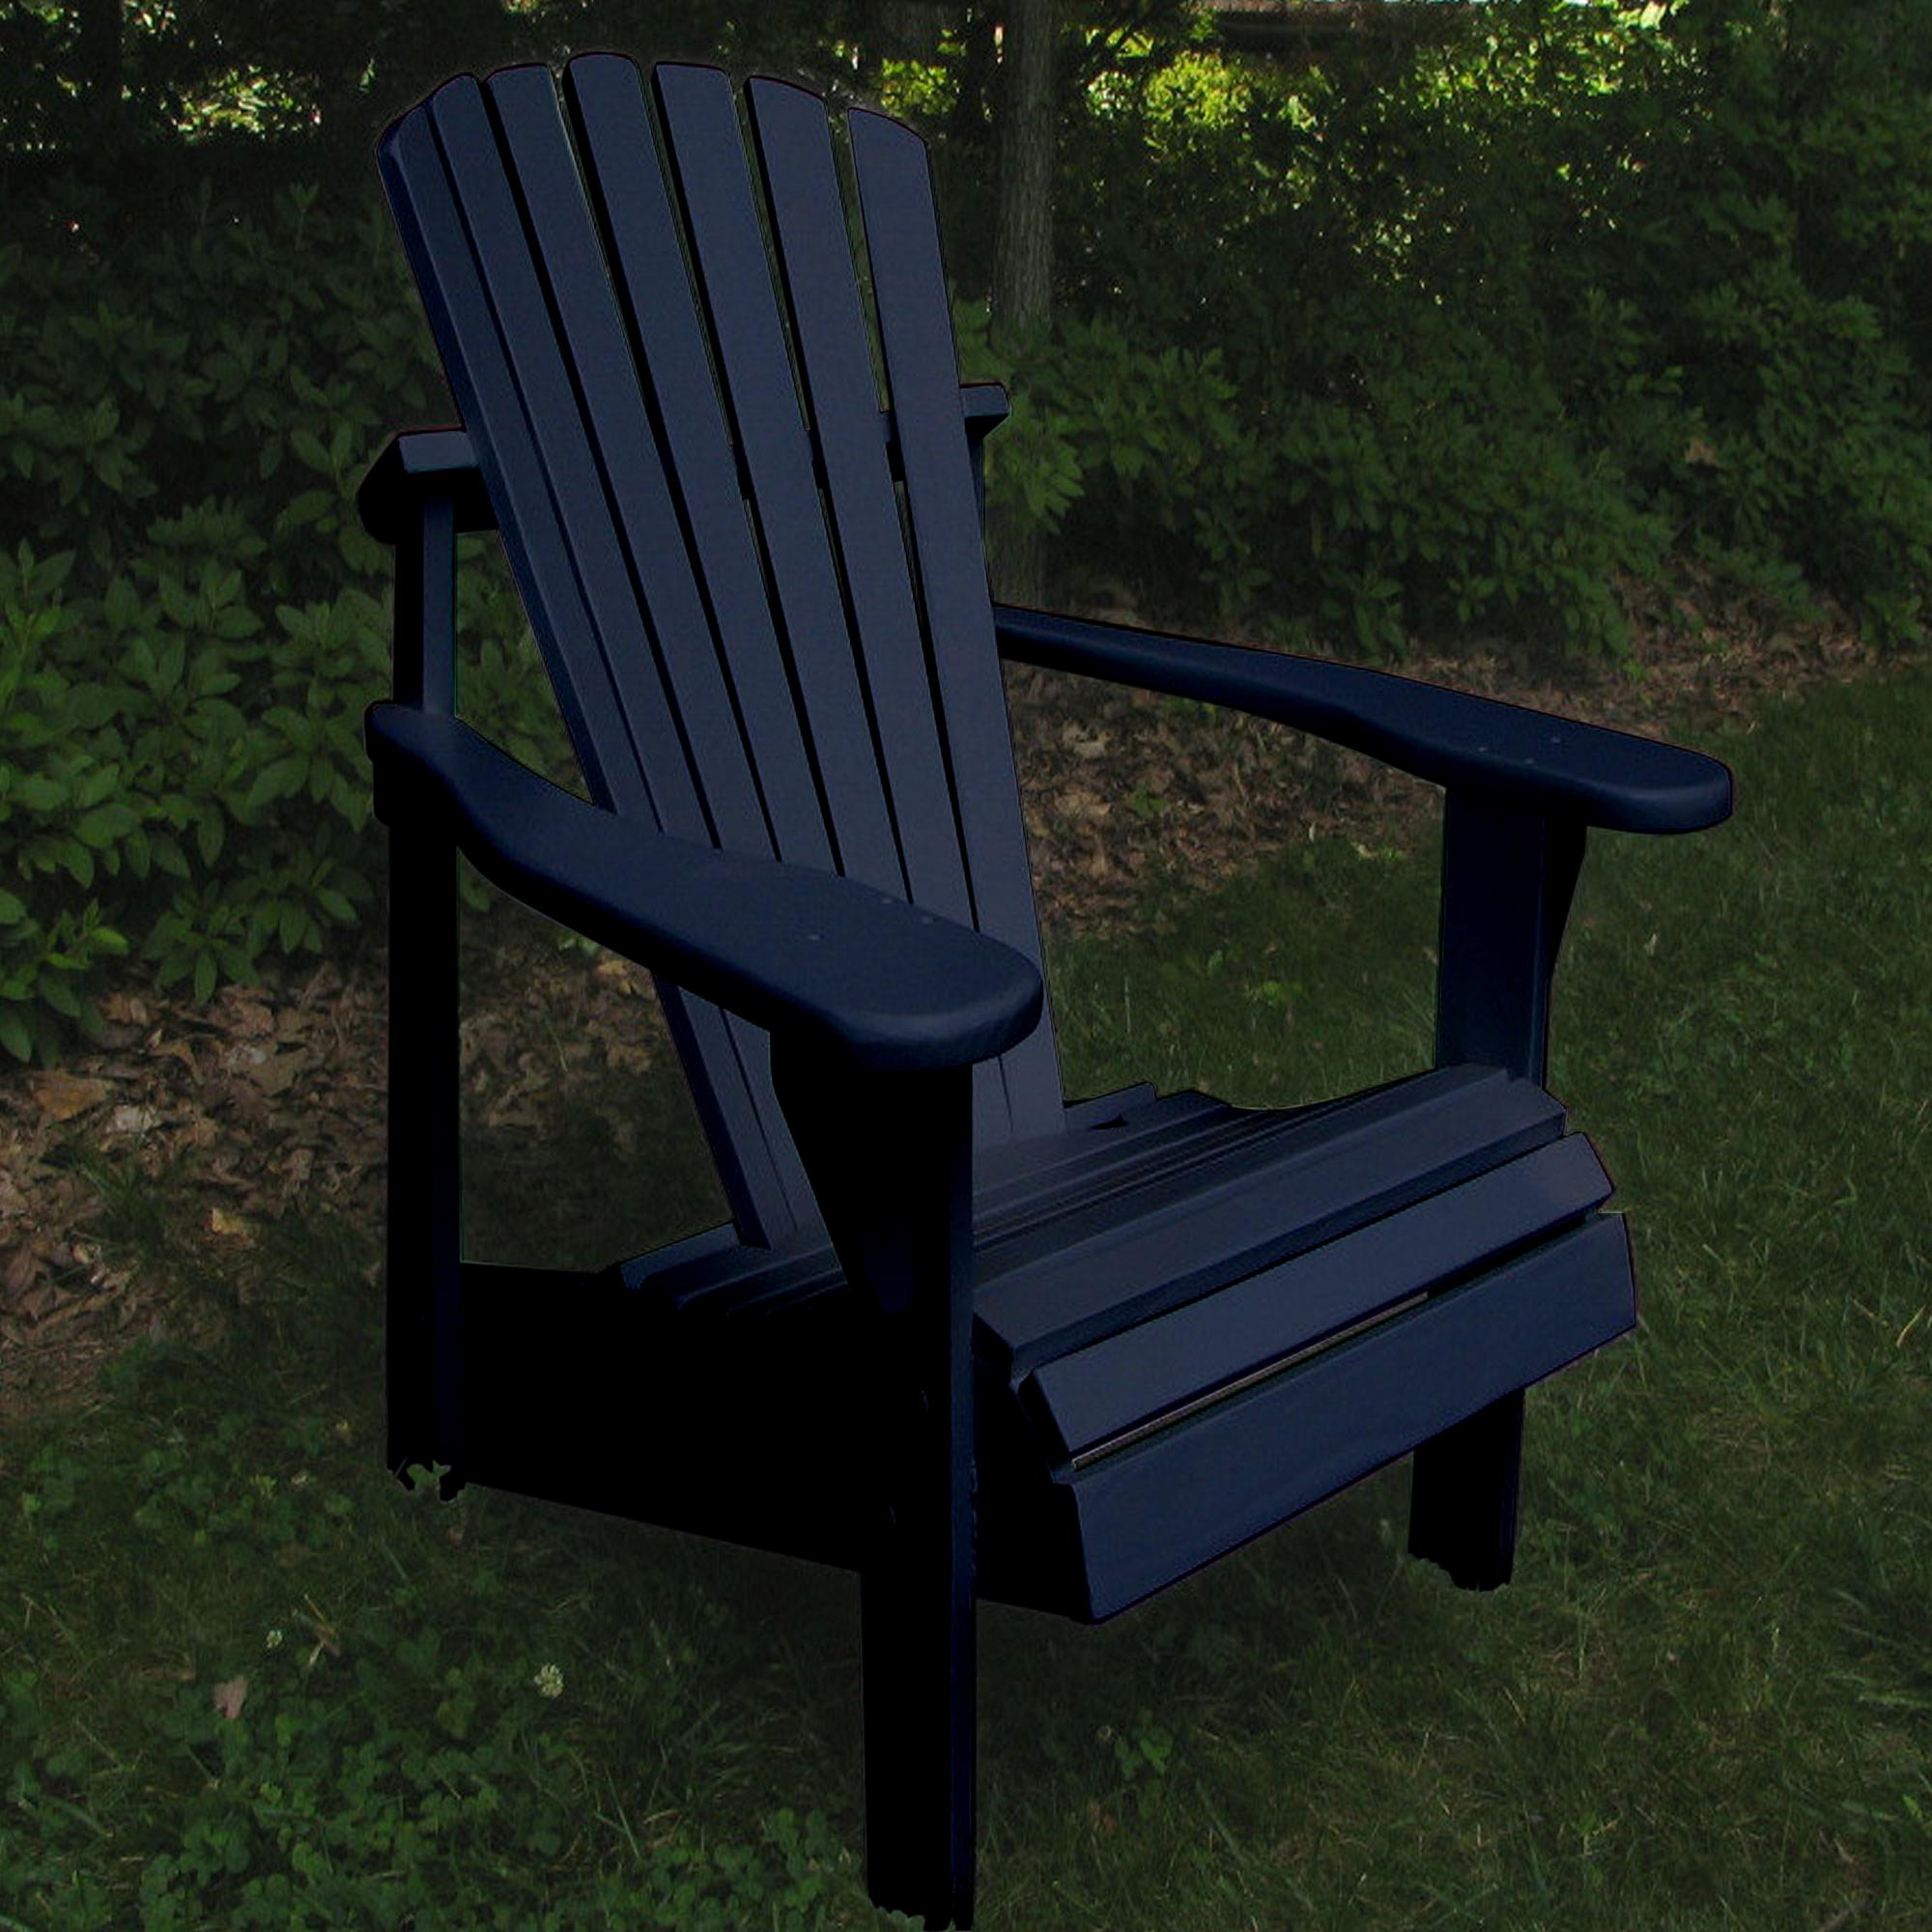 ... Set Of Adirondack Chairs With Cushions And Footrest ...